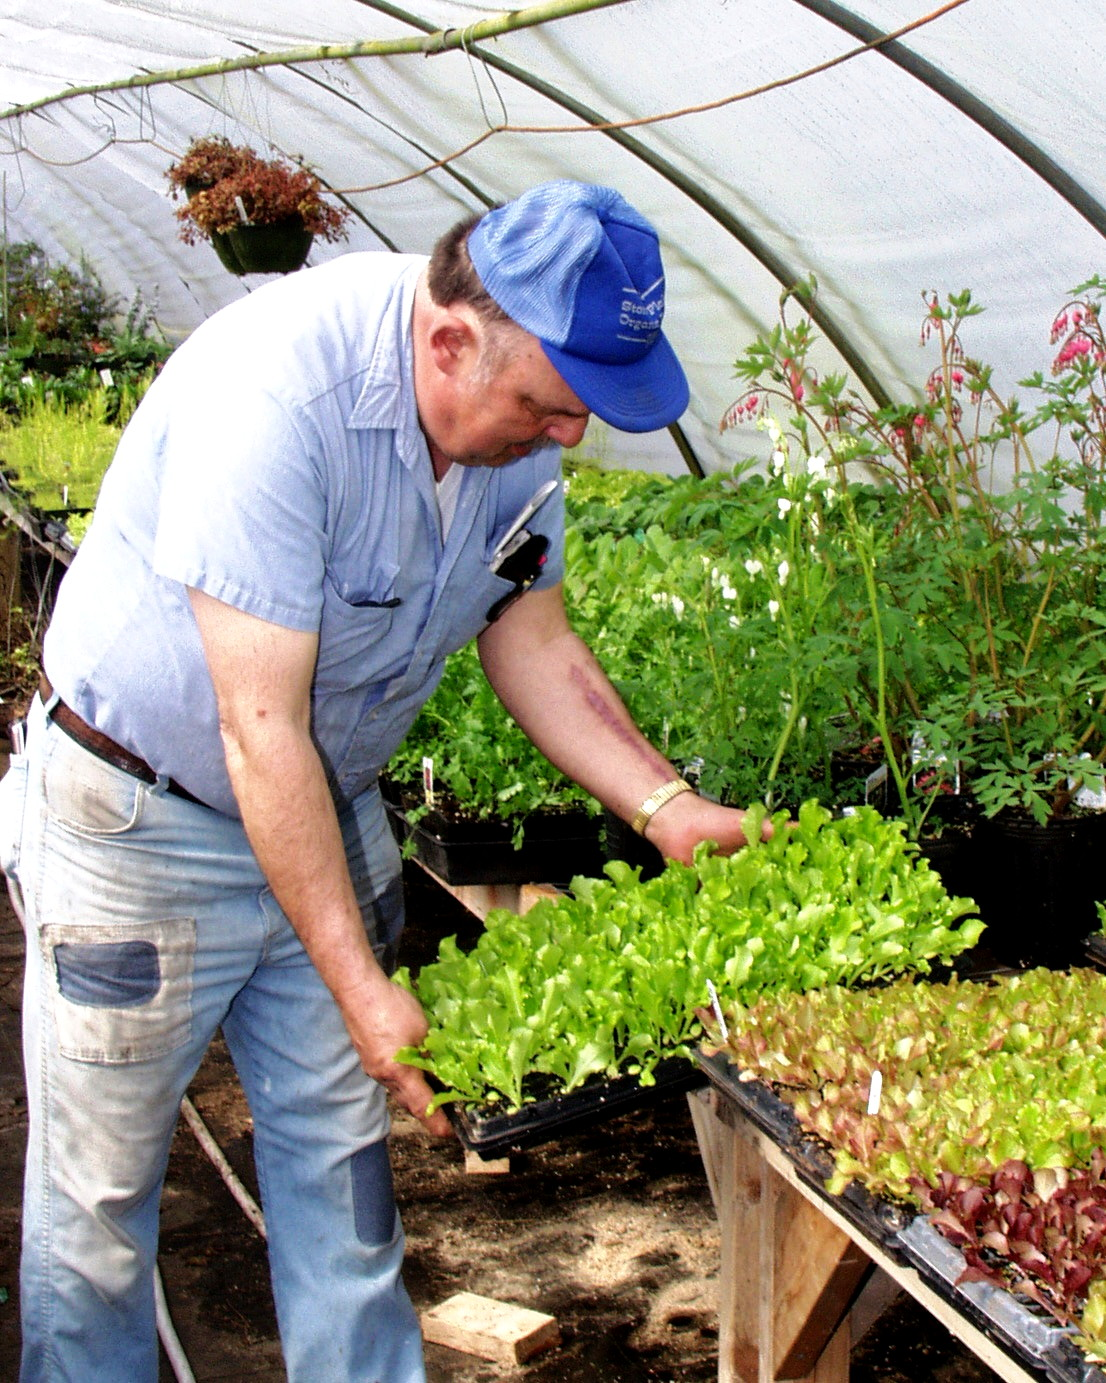 Bob Meyer working in the greenhouse at Stoney Plains Organic Farm. Photo courtesy Stoney Plains Organic Farm.